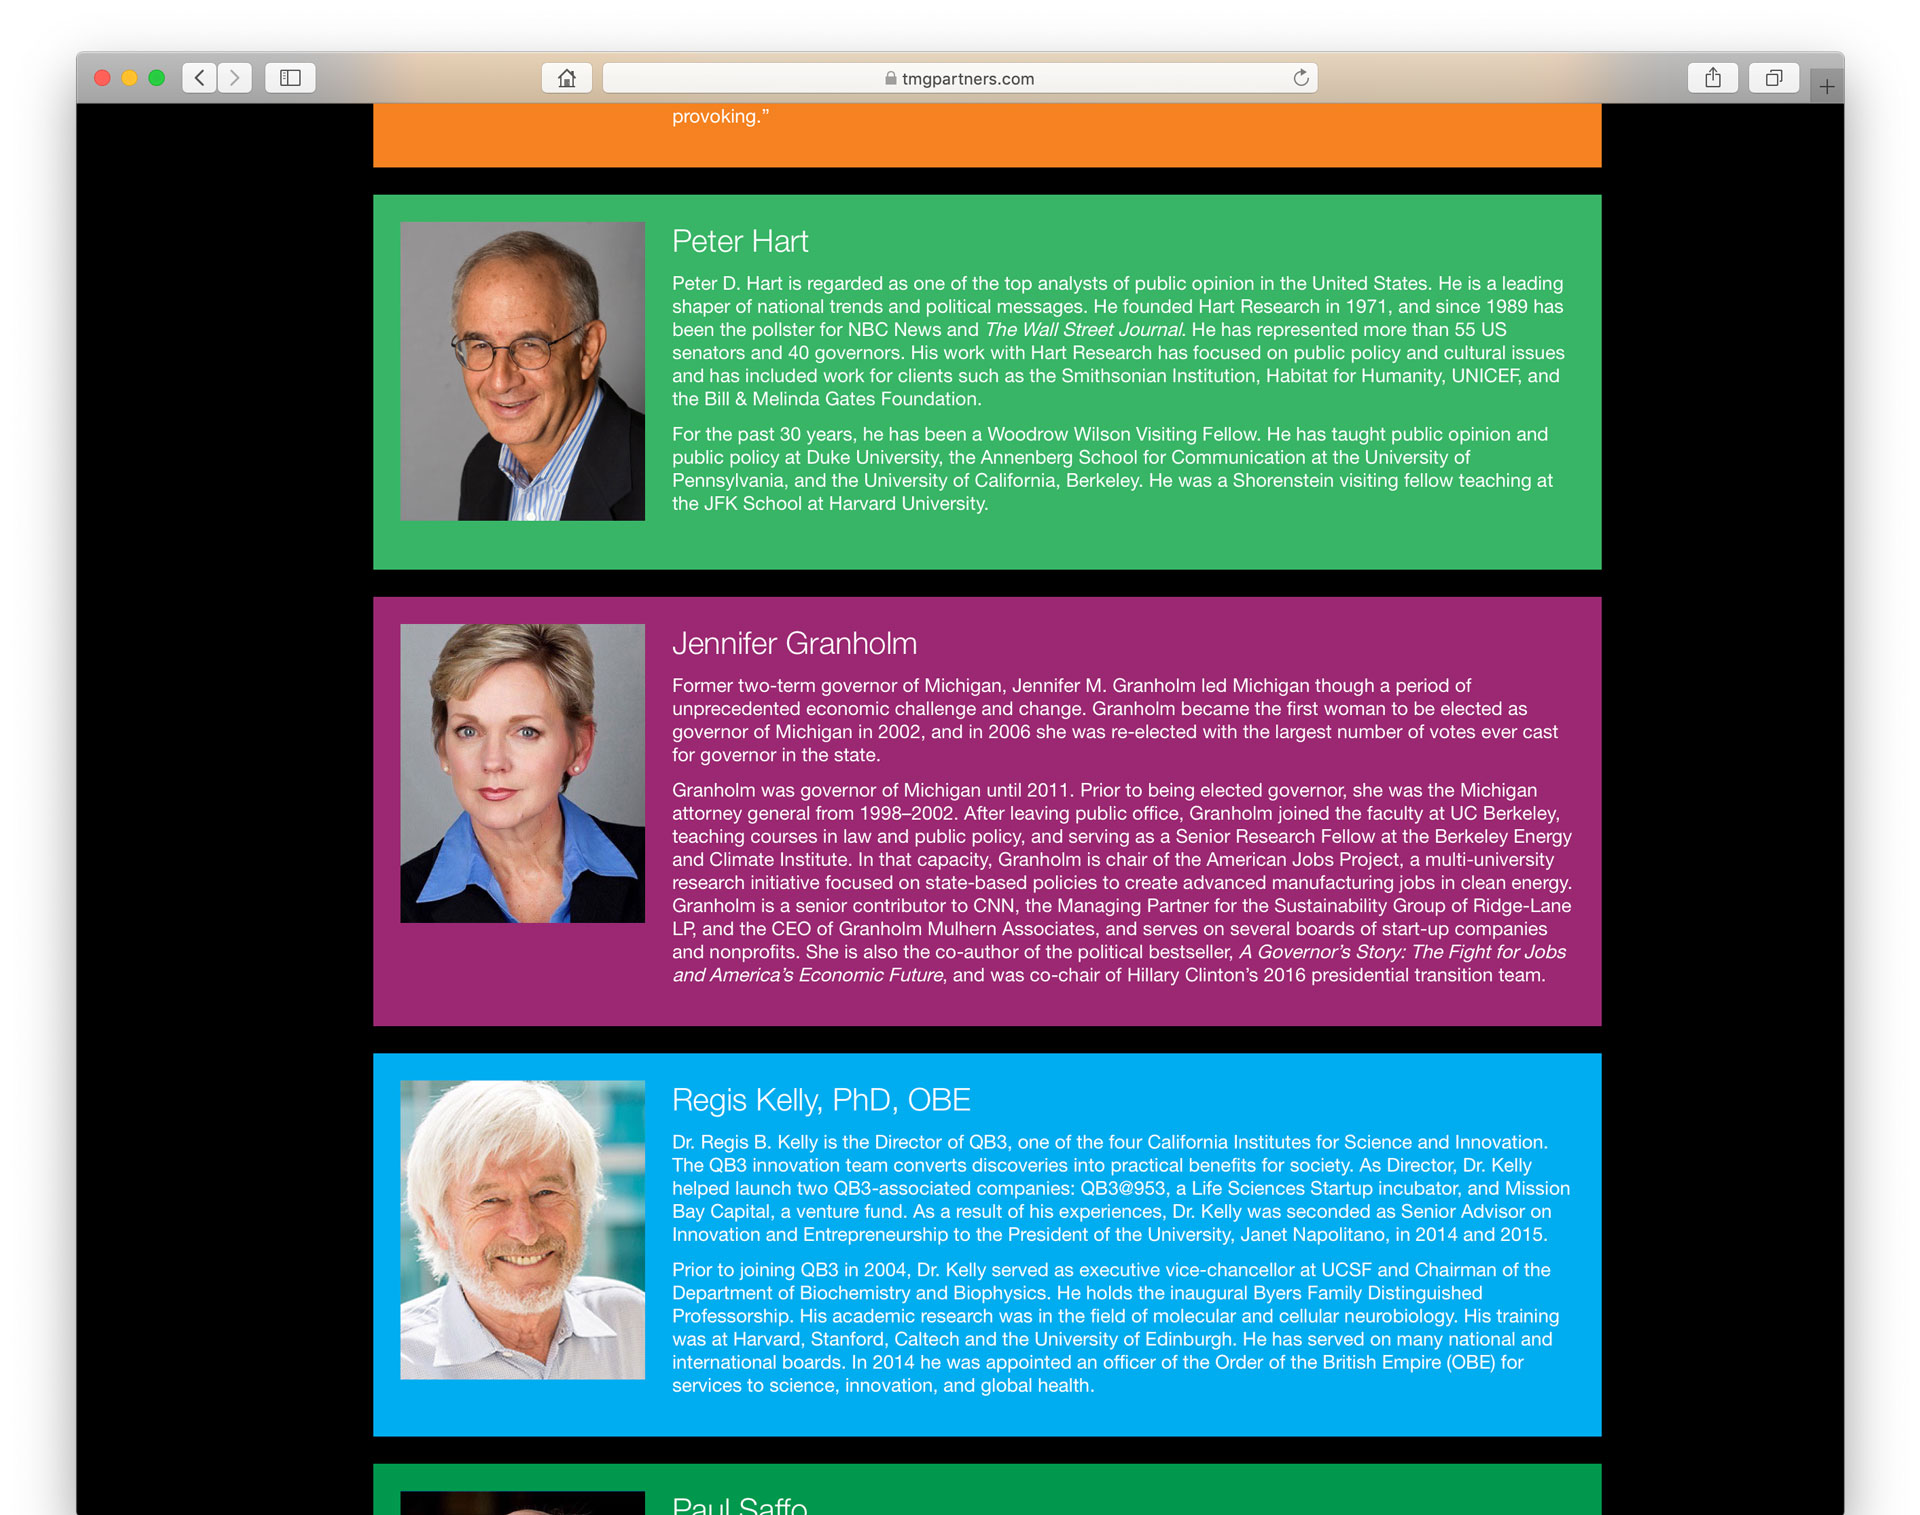 Screenshot of event web page showing speaker biographies.